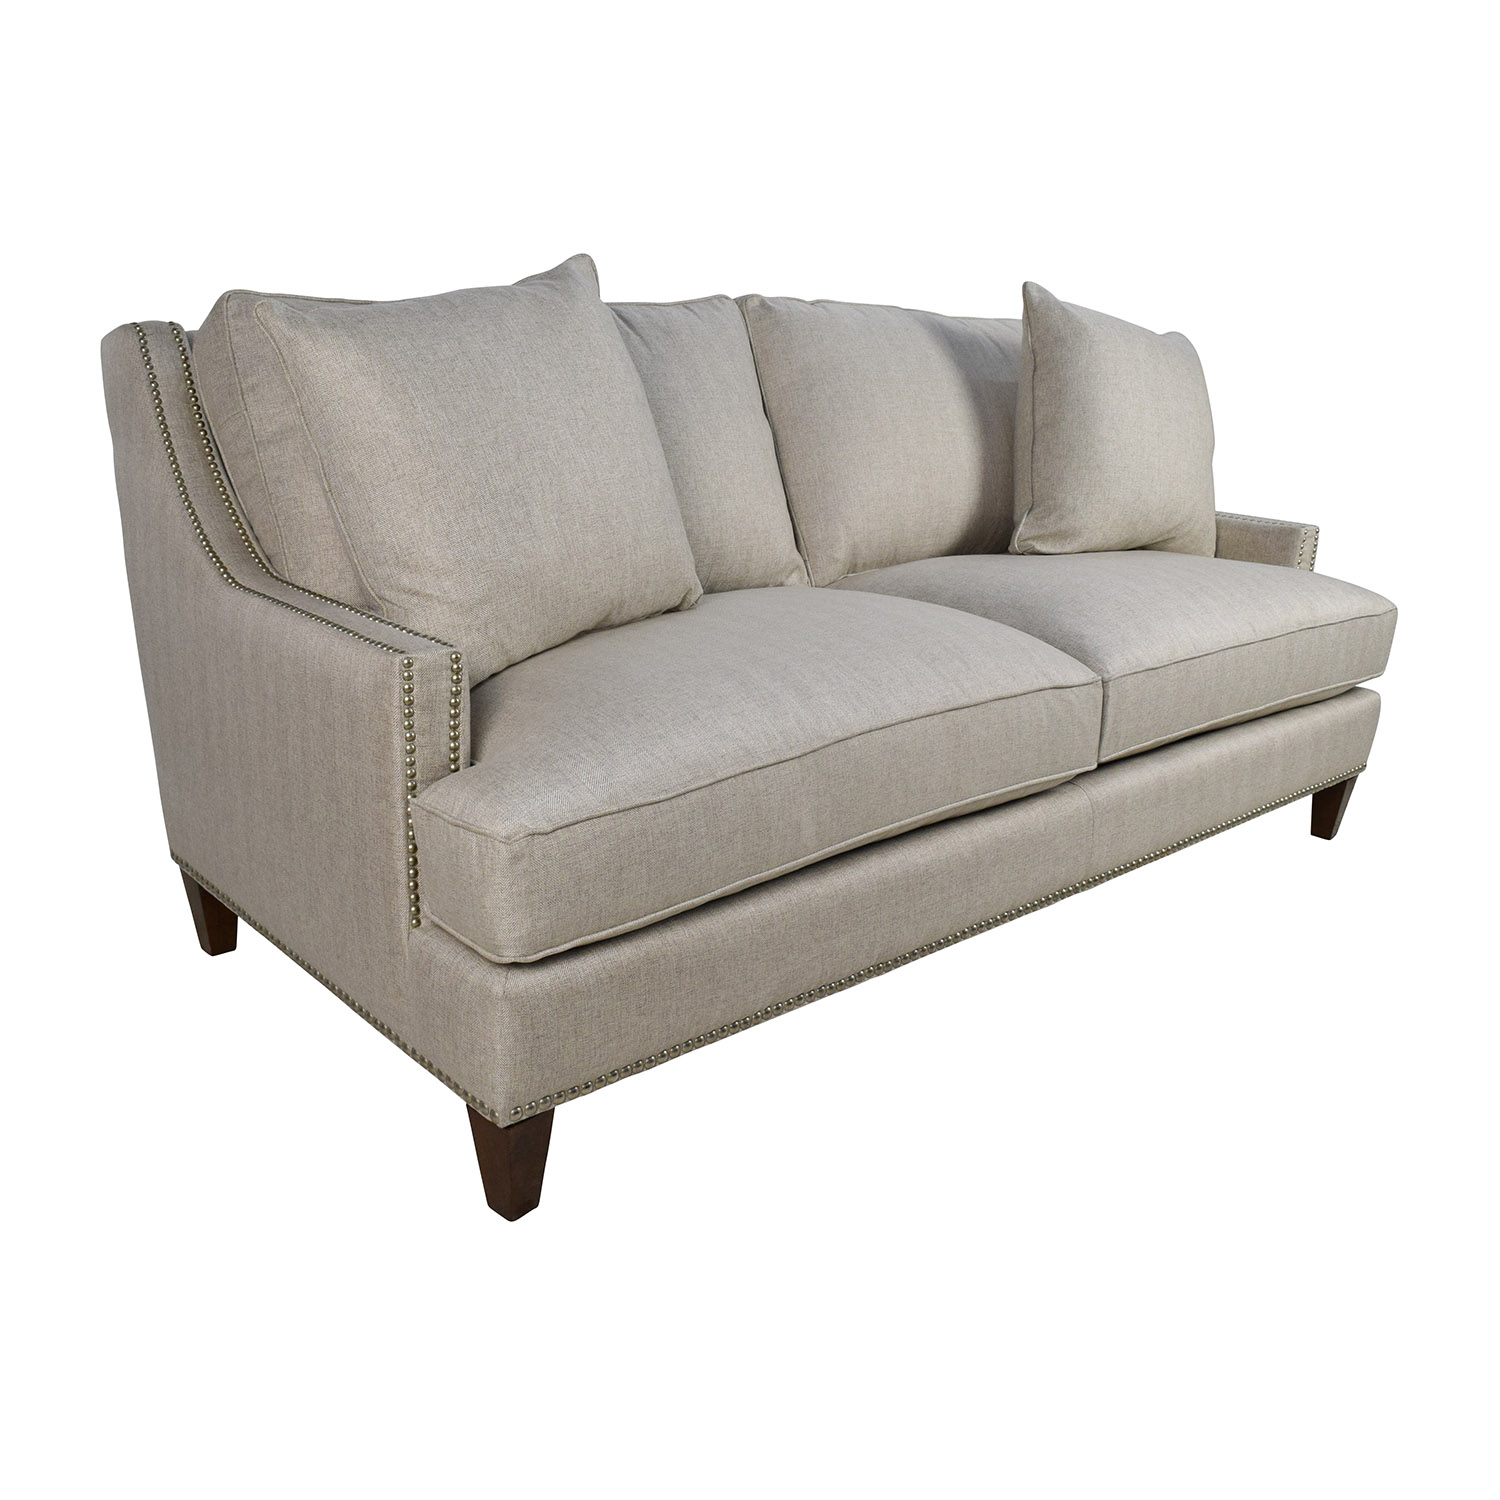 3 Sofas 44 Off Jennifer Convertibles Jennifer Convertibles 3